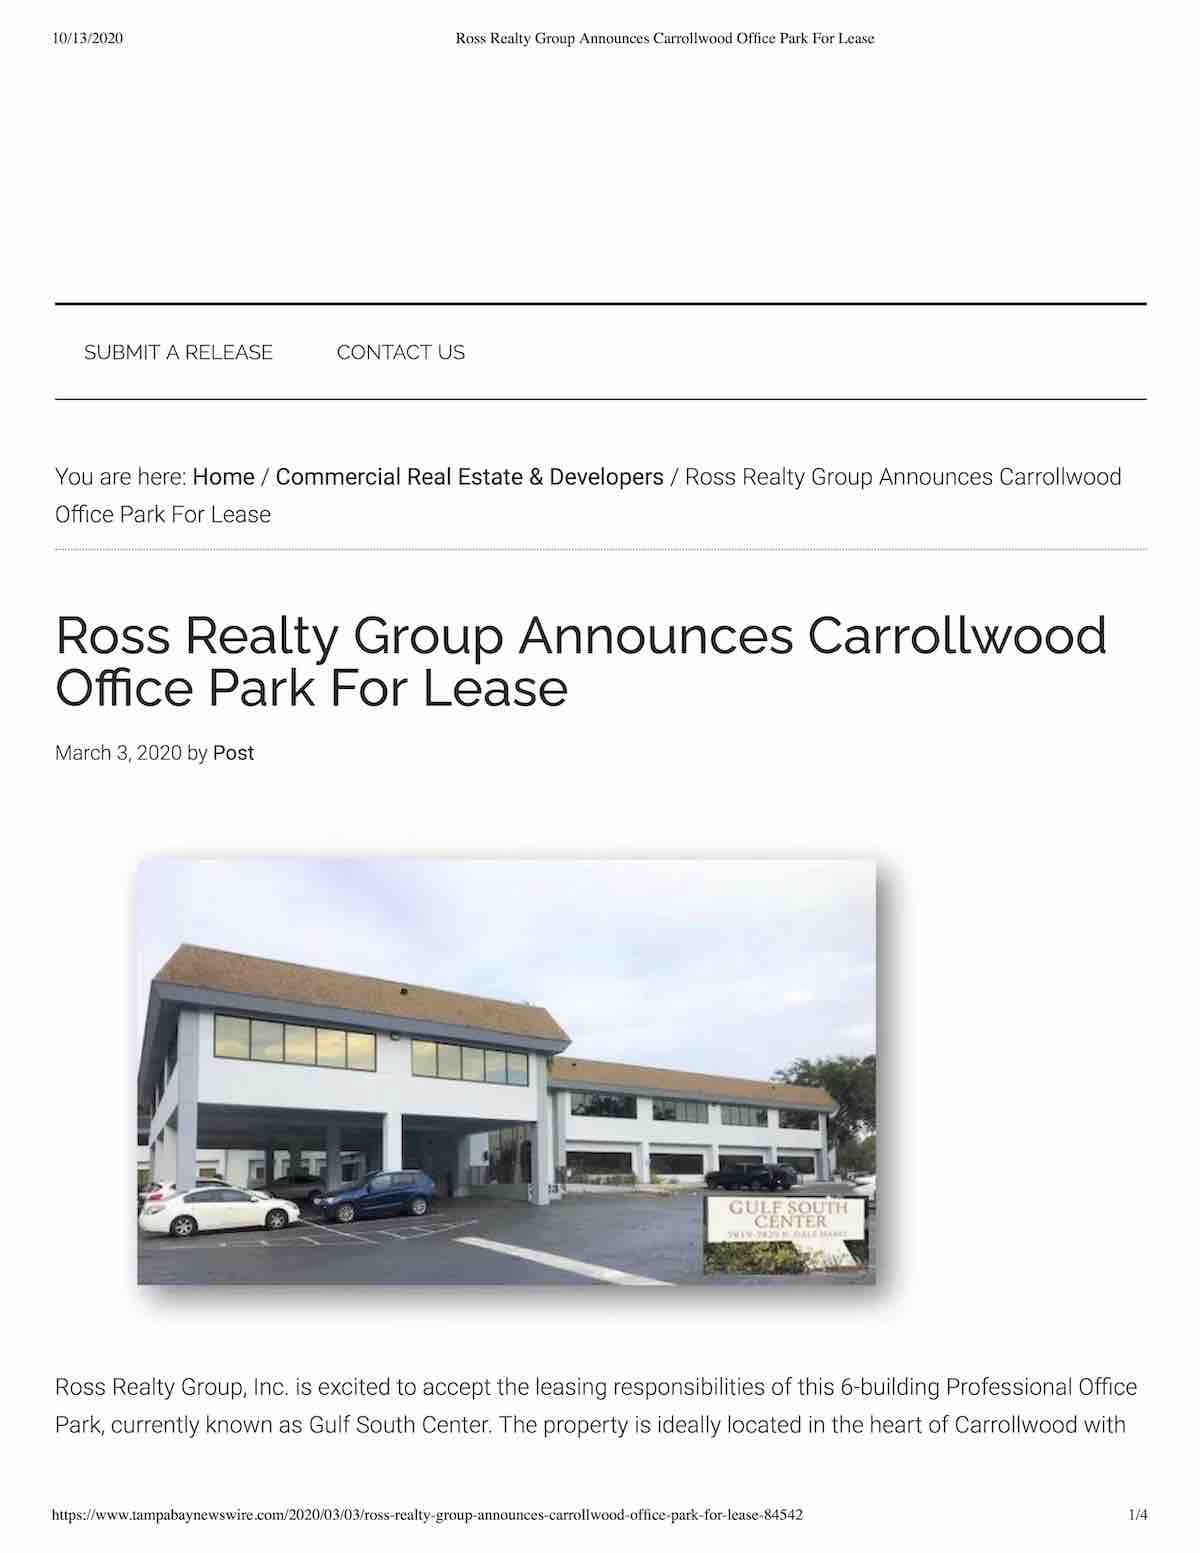 Tampa Commercial Real Estate - Ross Realty Group Announces Carrollwood Office Park For Lease P1